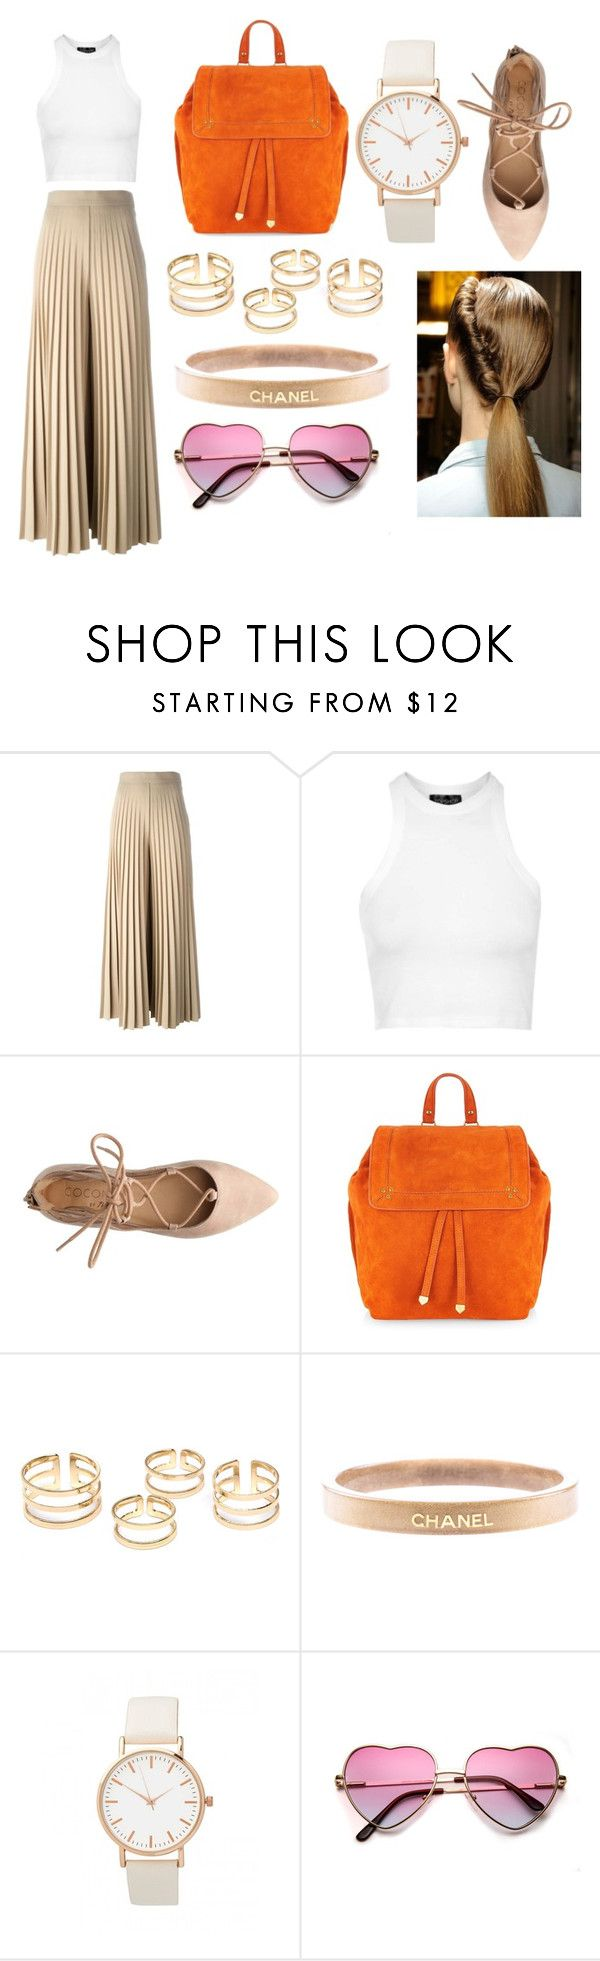 """""""Lazy me."""" by lineocarol on Polyvore featuring Givenchy, Topshop, Jérôme Dreyfuss, Chanel, women's clothing, women, female, woman, misses and juniors"""